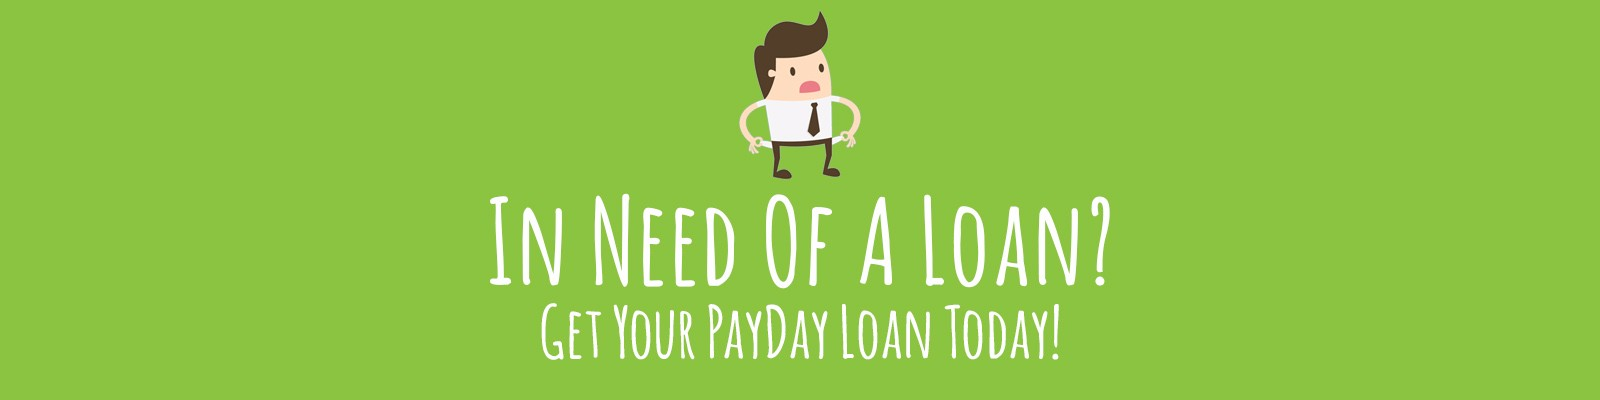 PayDay Loan Banner2